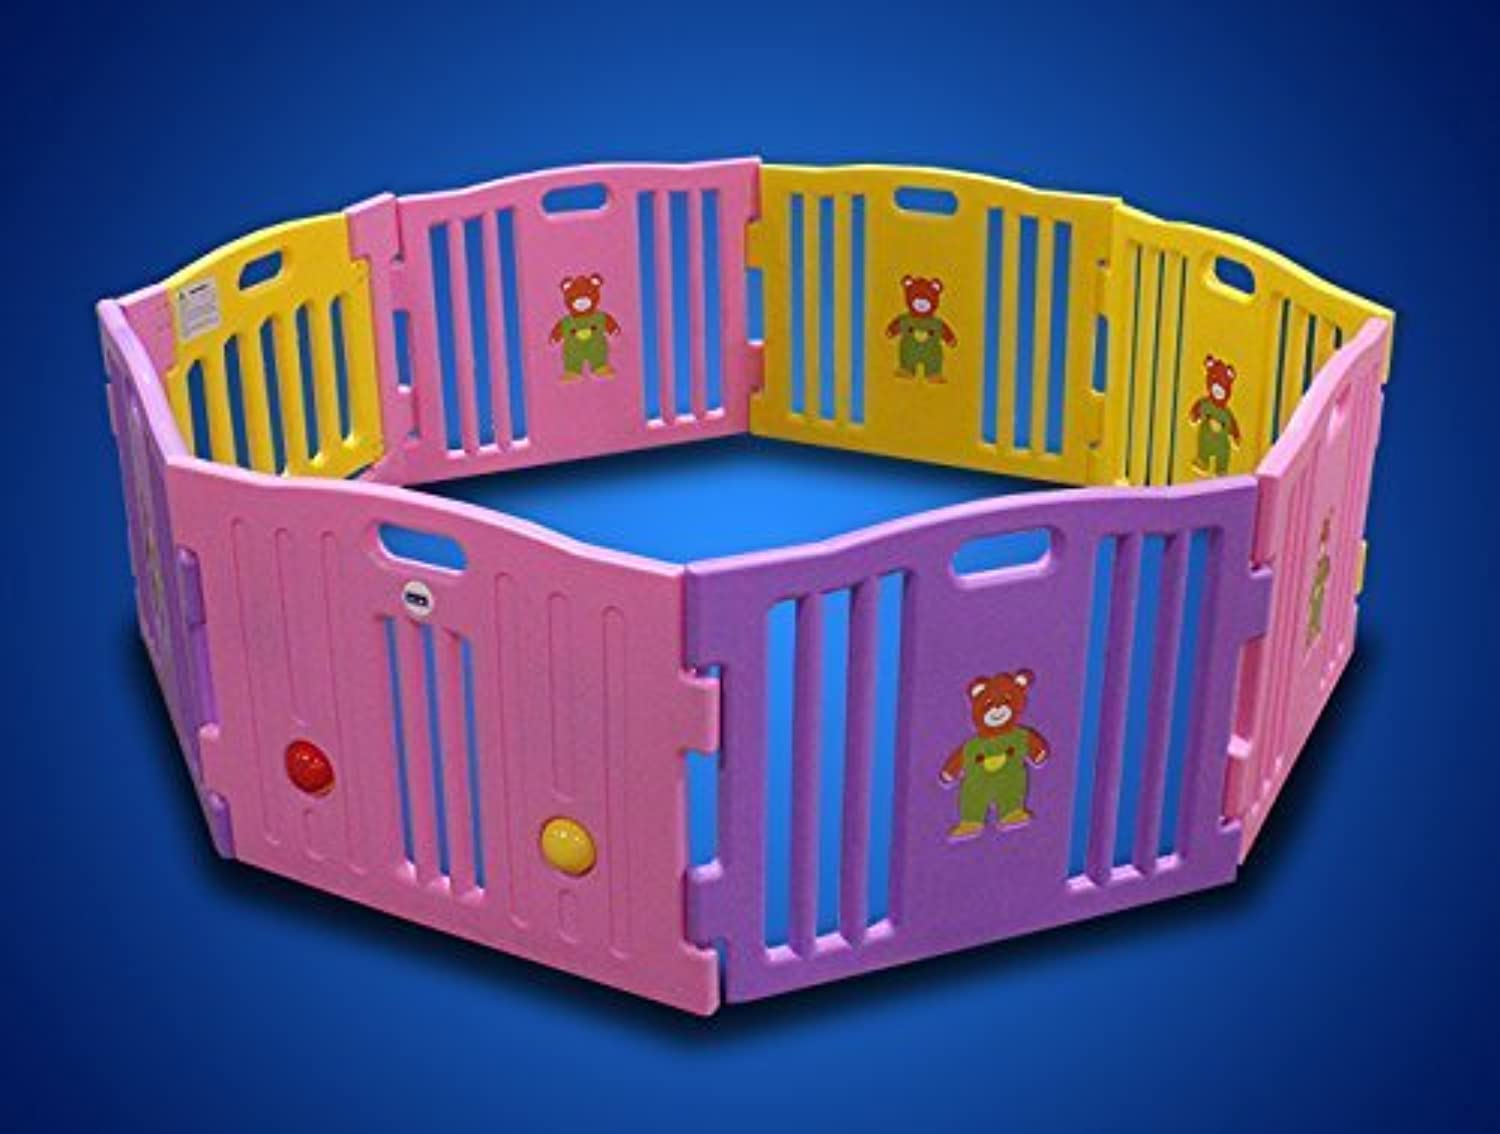 New Pink 8 Panel Baby Playpen Kids Safety Play Center Yard Home Indoor Girls by MTN Gearsmith [並行輸入品]